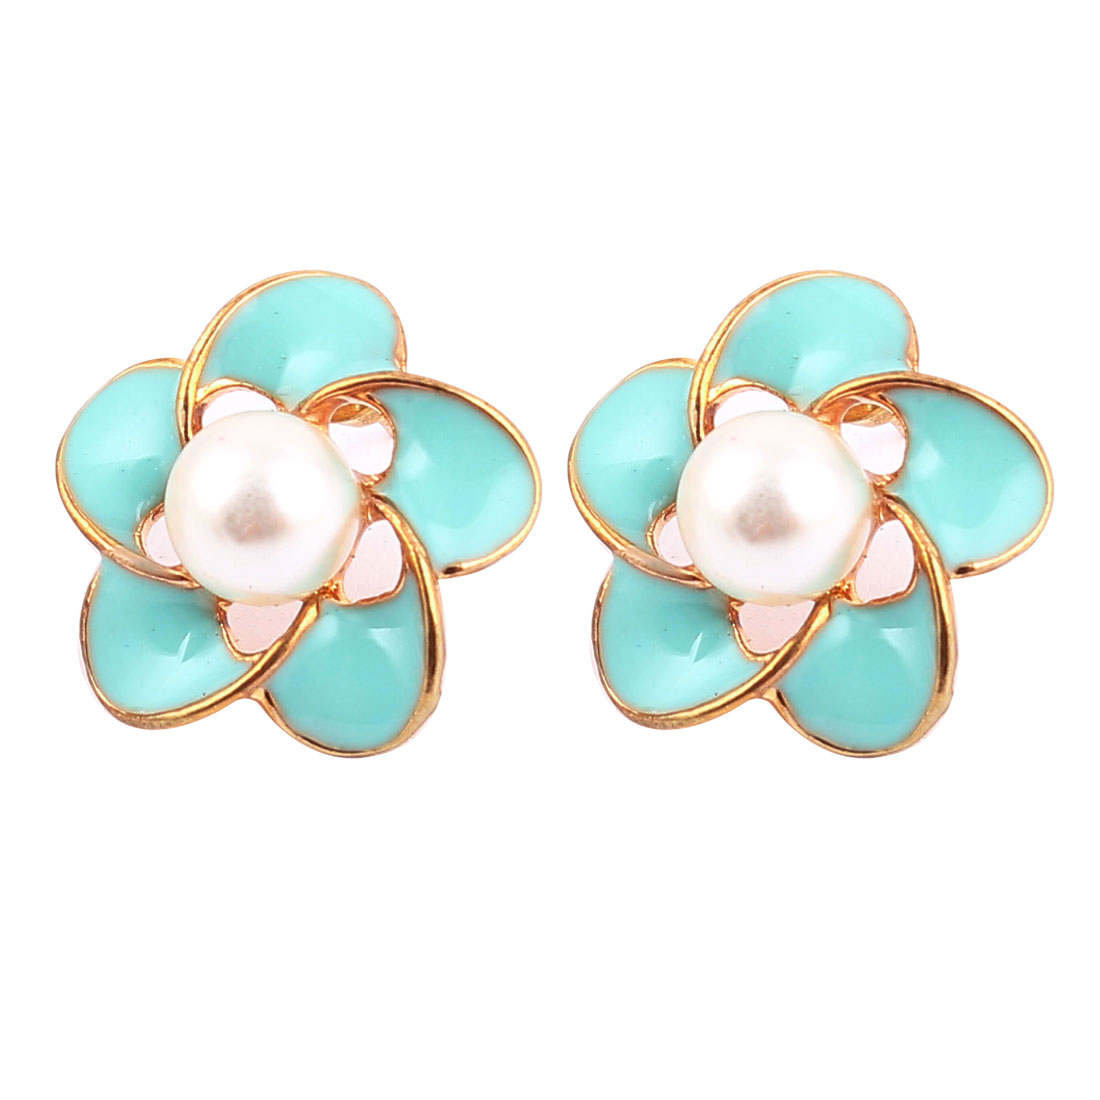 Lady Women Flower Faux Pearl Pendant Ear Stud Earrings Jewelry Pair